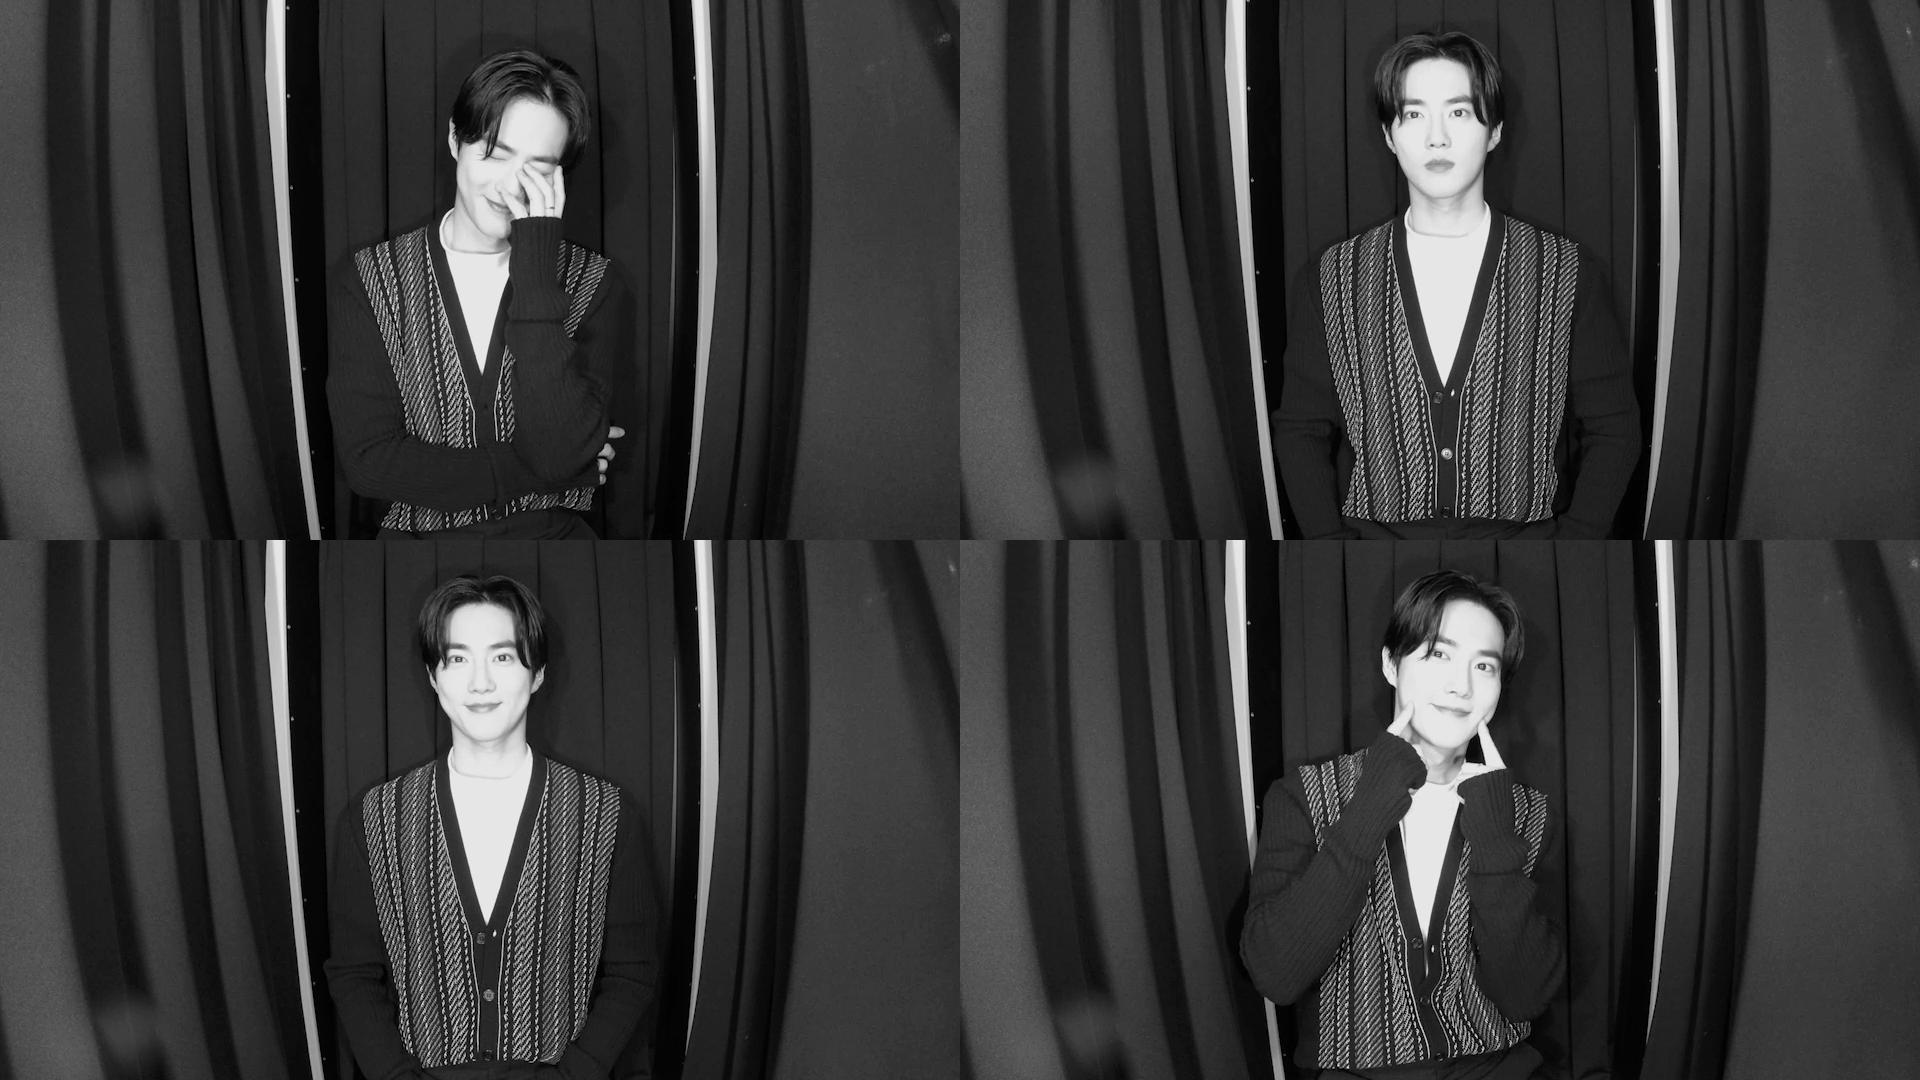 SUHO in the Photo Booth 📸